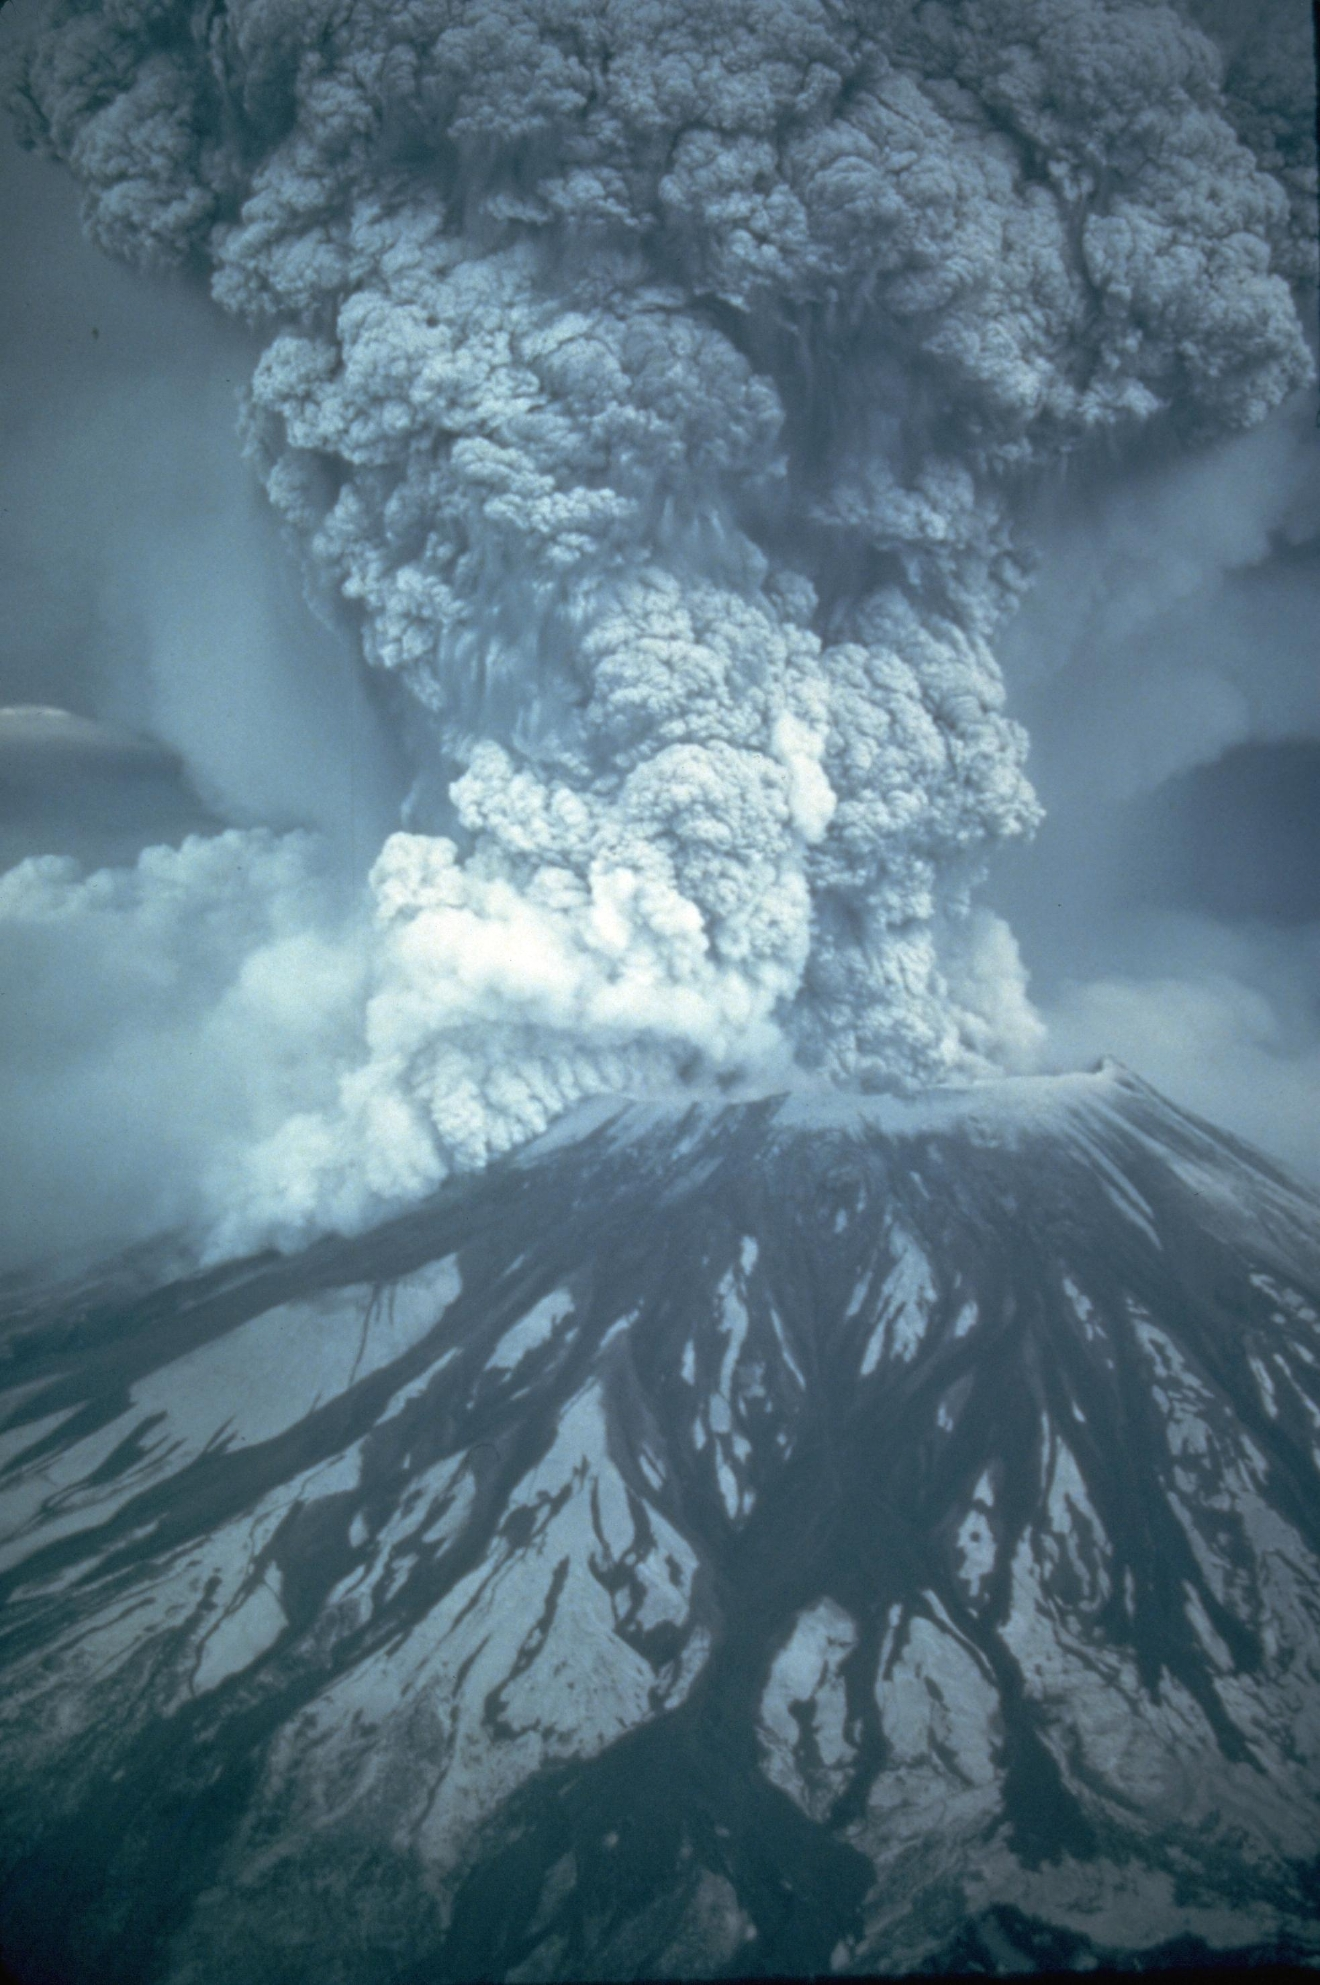 Mount St. Helens stood silent for over a century. Earthquakes swarmed the mountain in March 1980. Cracks appeared in the snow and ice atop the peak a few days later. And on March 27, the ash spewed from the top of the volcano.Geologists worked to study the peak as it rumbled back to life.What happened next caught the scientific community off guard.At 8:32 a.m. on May 18, 1980, a 5.1 earthquake shook the mountain.The mountain didn't erupt up; it erupted out to the side.The mountain went from 9,677 to 8,364 feet tall in an instant.All told, 57 people died or disappeared. (Austin Post/USGS)